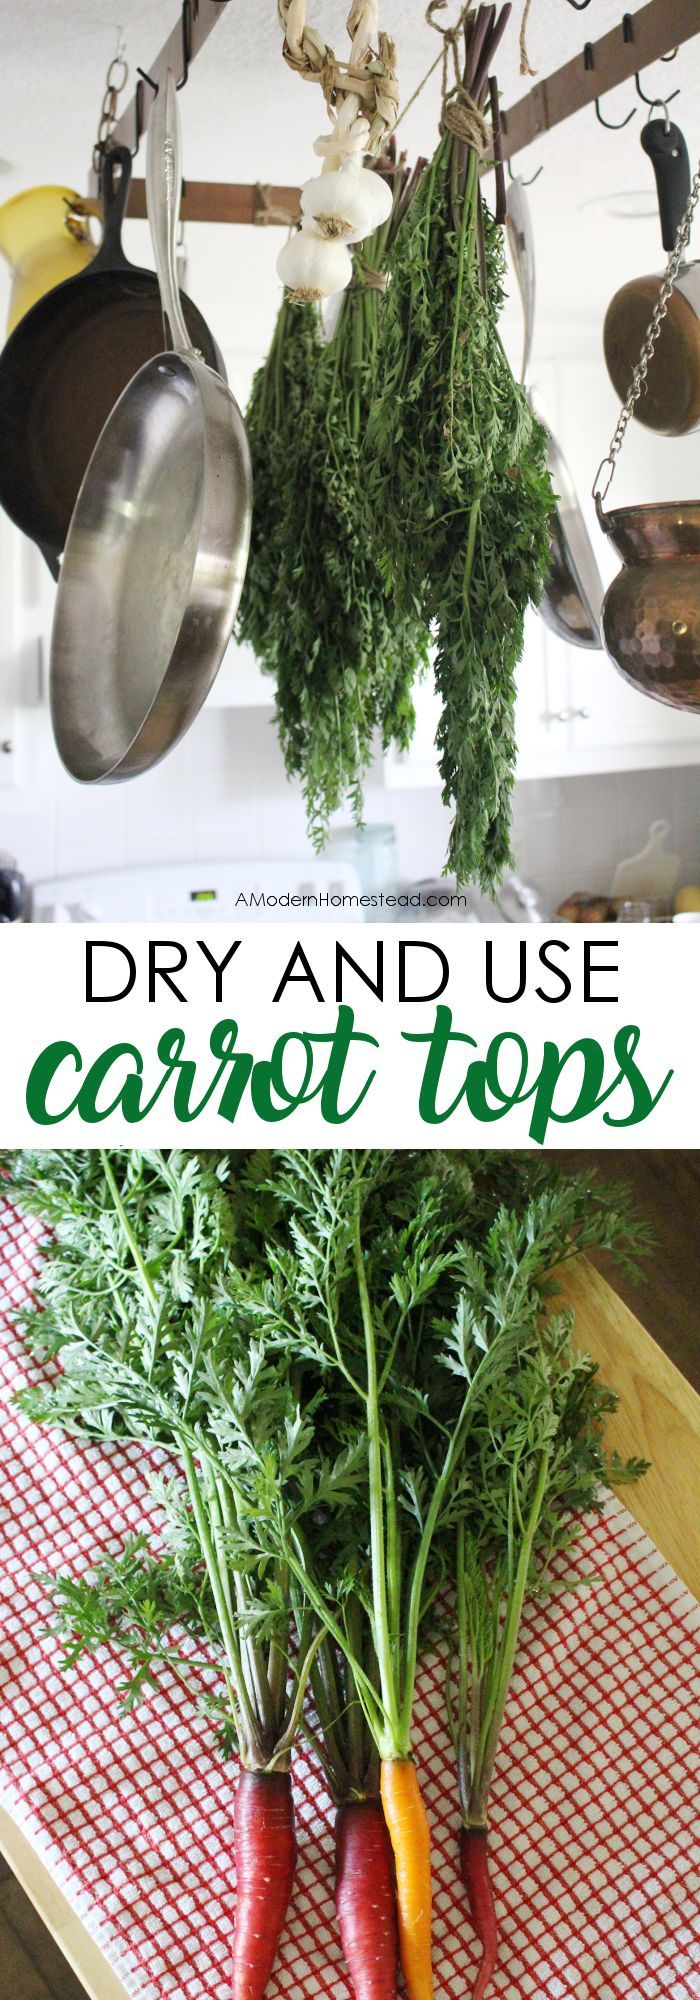 Wondering how to eat carrot tops? Find out how to dry and eat carrot greens! It's easy and nutritious!